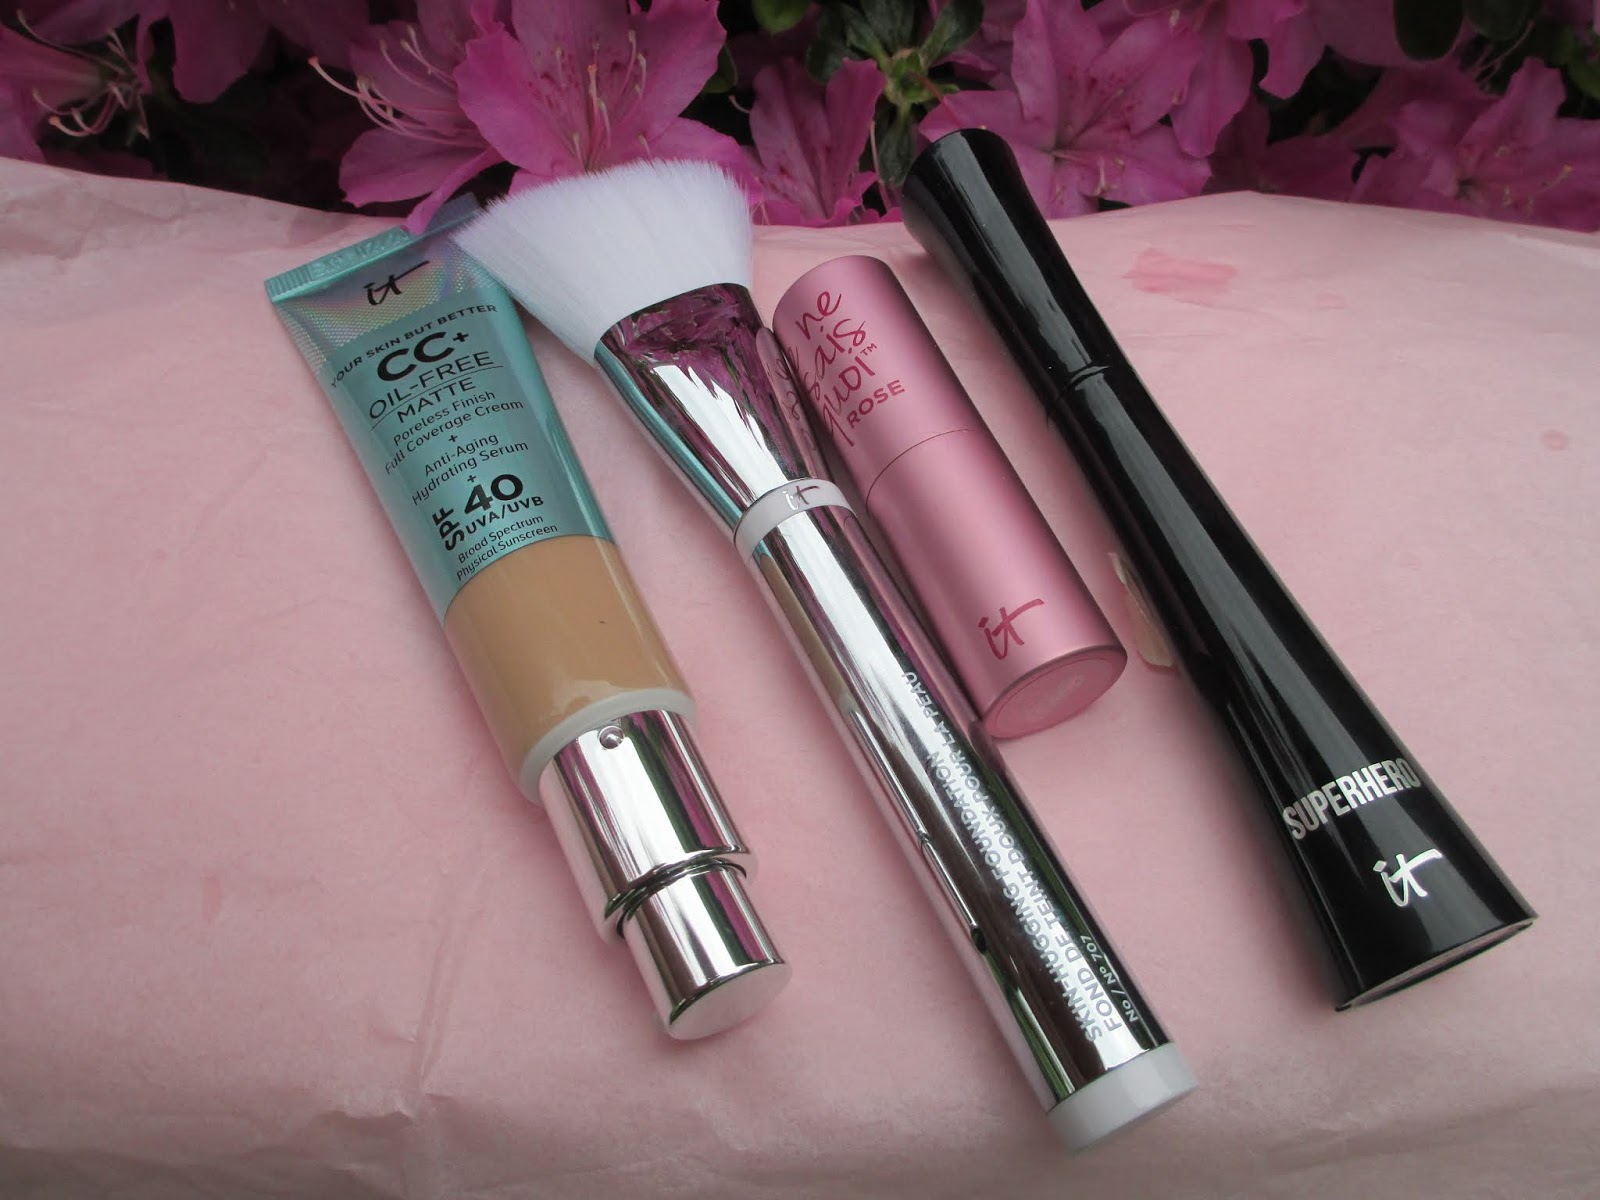 Whats Inside Your Beauty Bag?: It Cosmetics IT's Your Summer